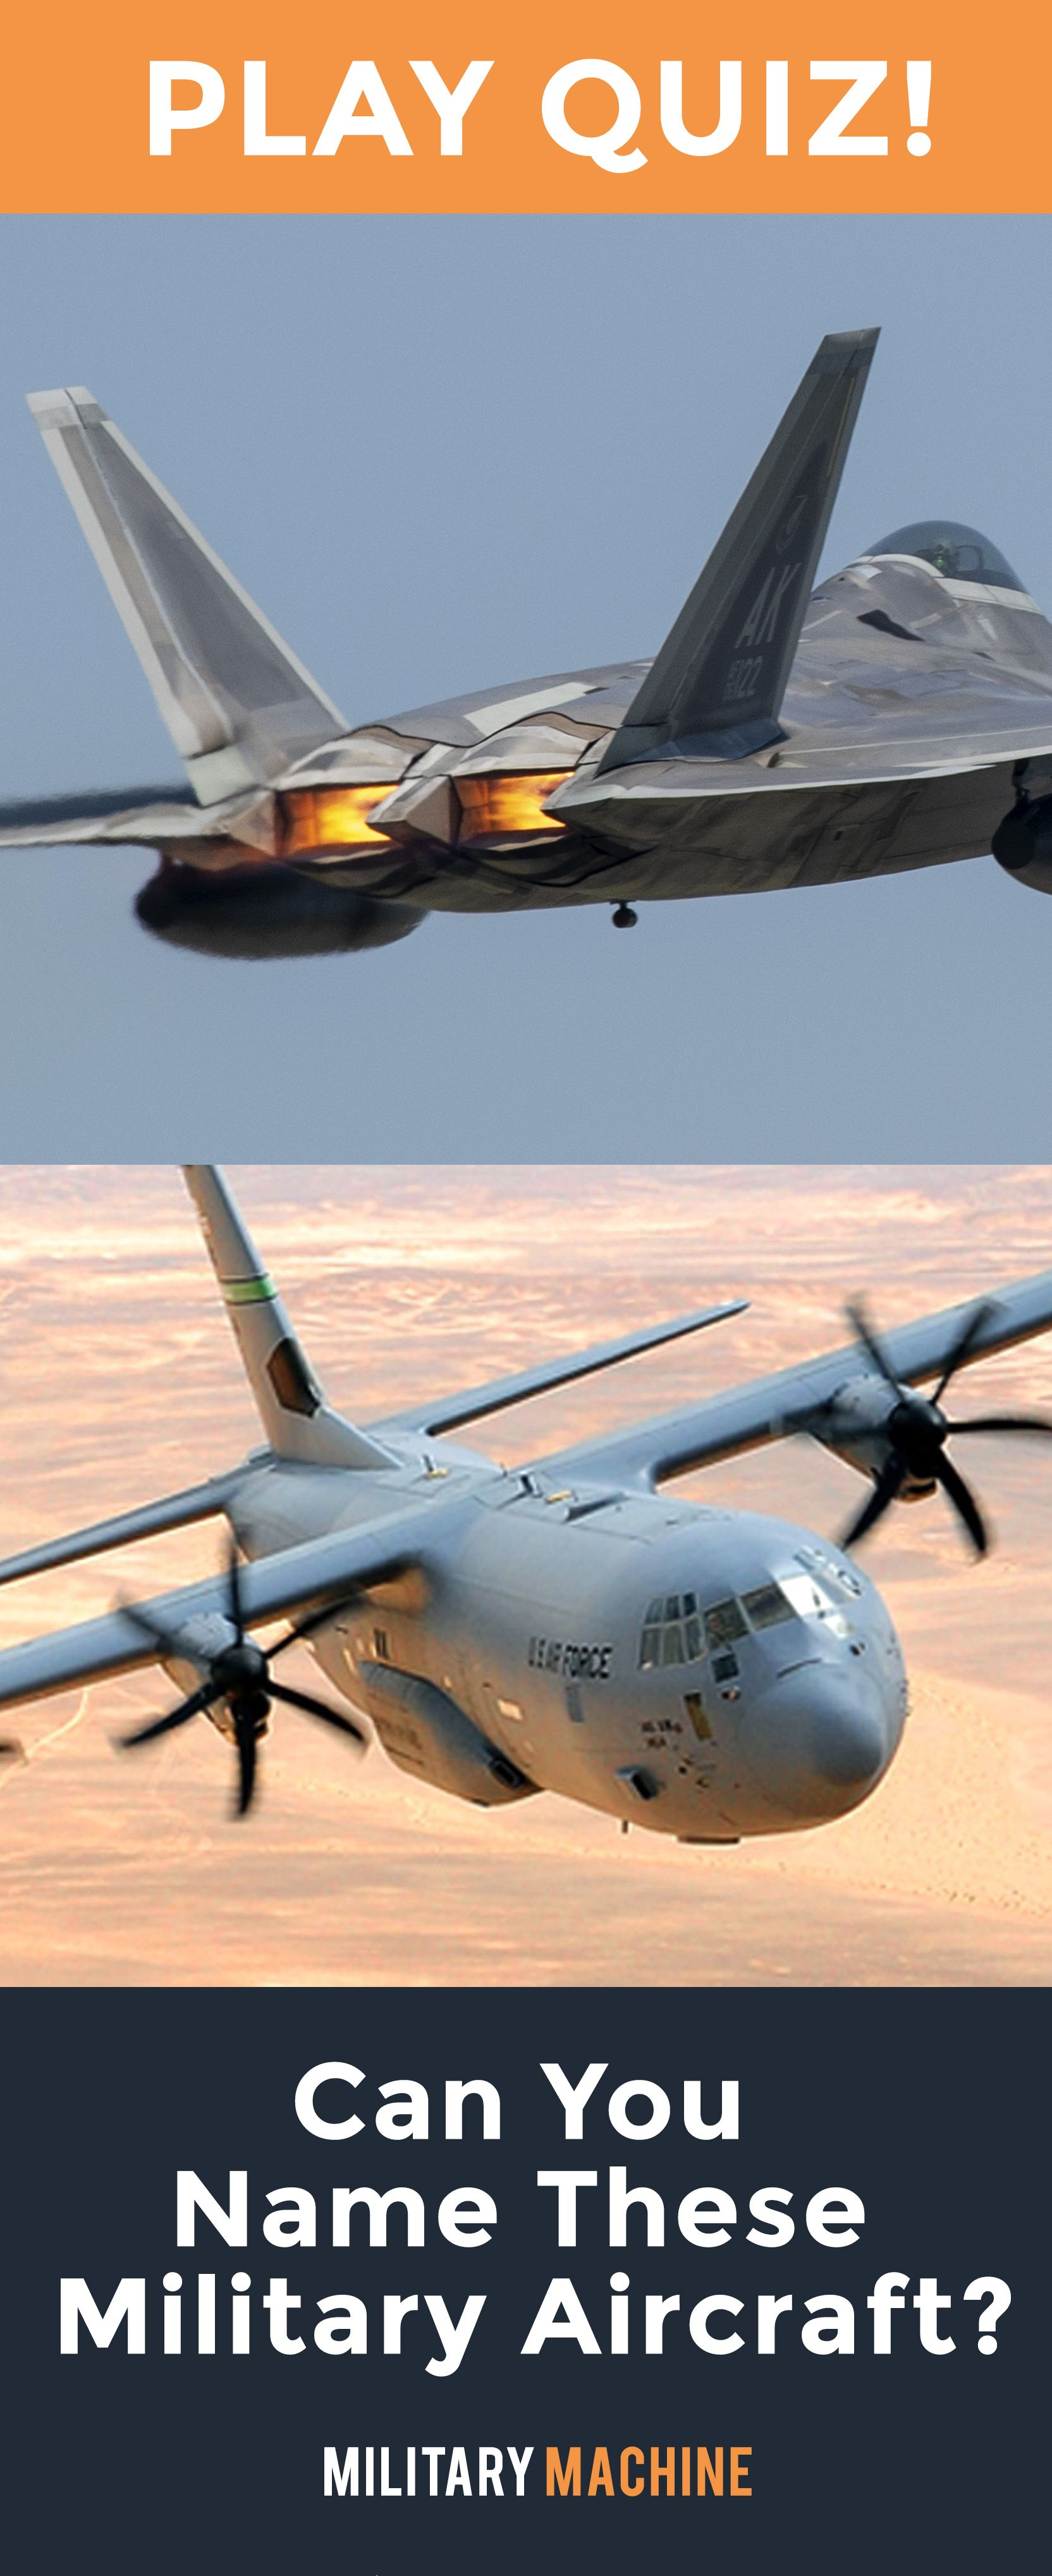 Can You Name These Military Aircraft By Image? | Planes ...